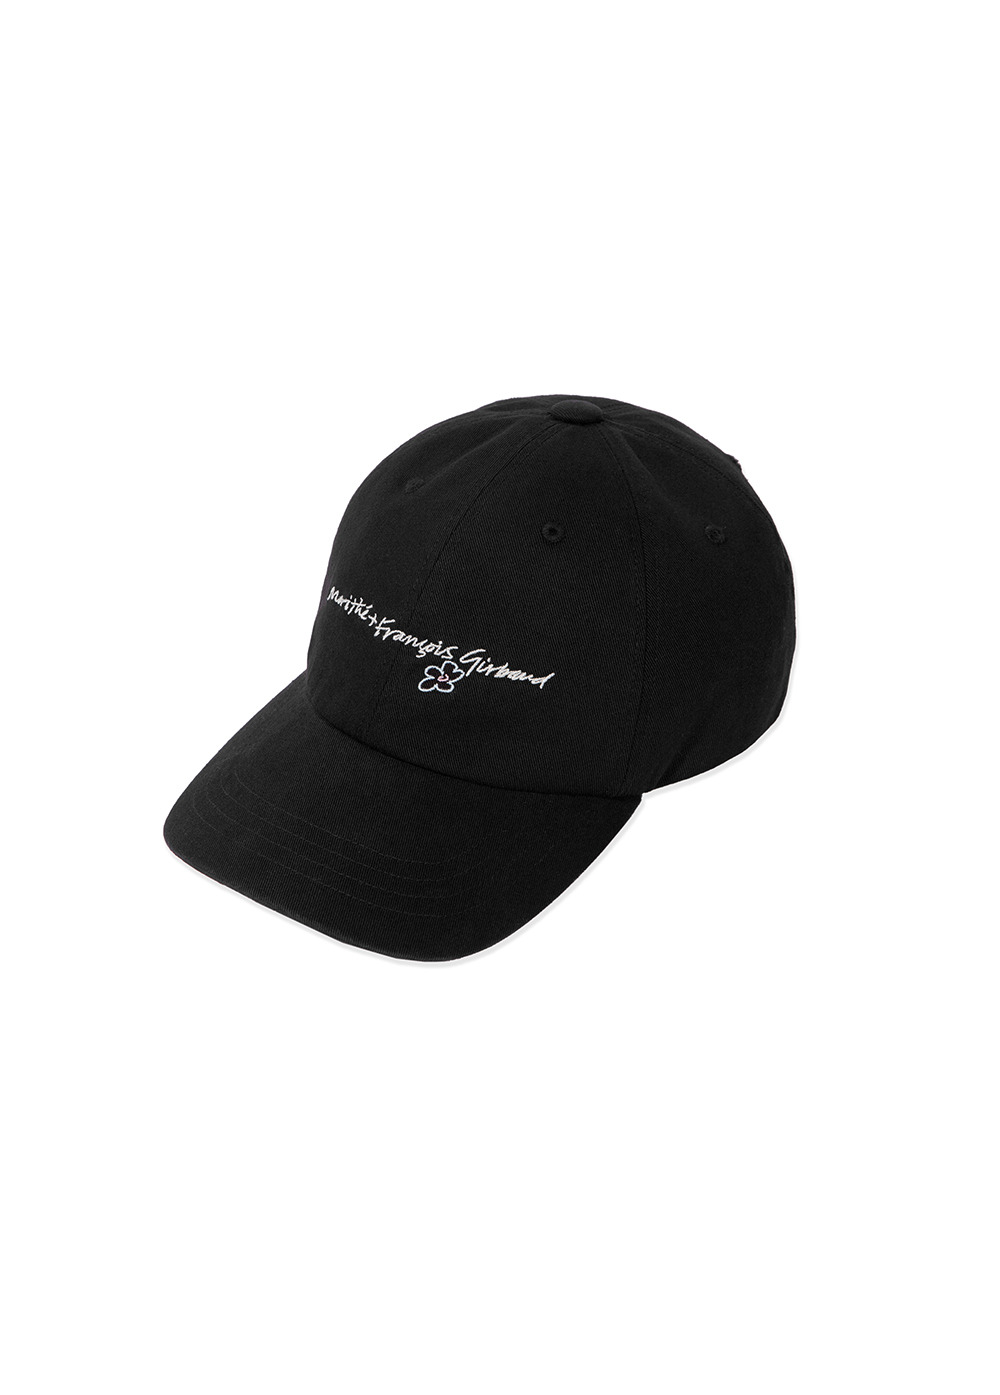 MFG HANDWRITTEN LOGO CAP black